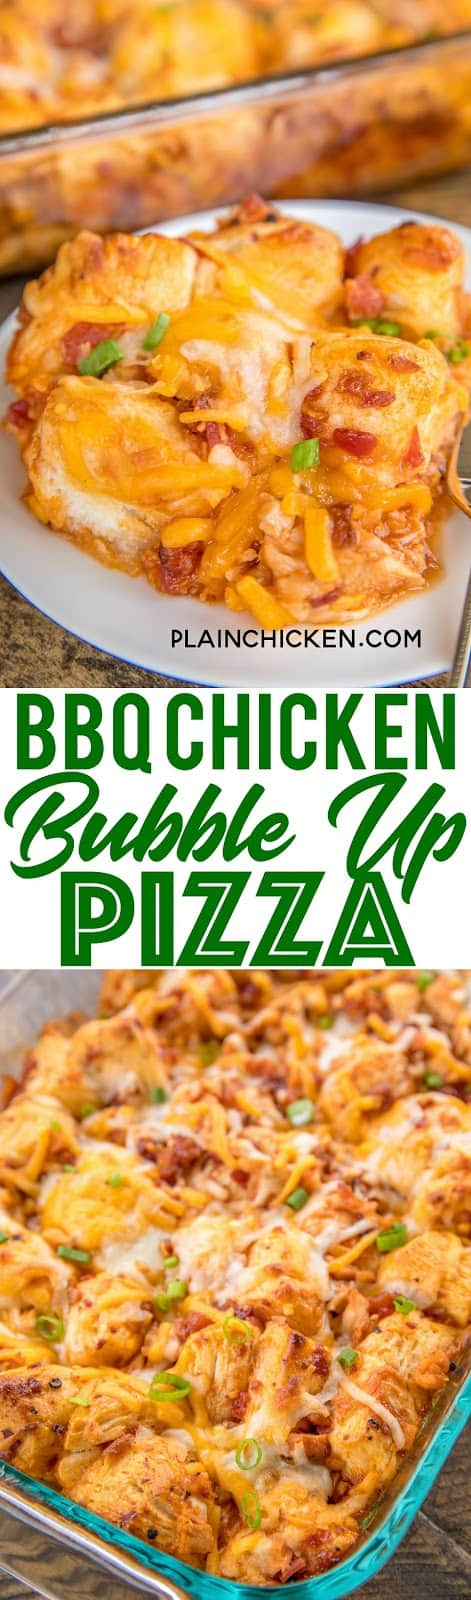 BBQ Chicken Bubble Up Pizza Recipe - Biscuit Pizza Casserole Recipe - Bubble Up Pizza - only 5 ingredients and ready in under 30 minutes! Refrigerated biscuits tossed in BBQ sauce chicken, bacon,topped with mozzarella and cheddar. We LOVE this casserole! We make this at least twice a month!! #pizza #casserole #chickenrecipe